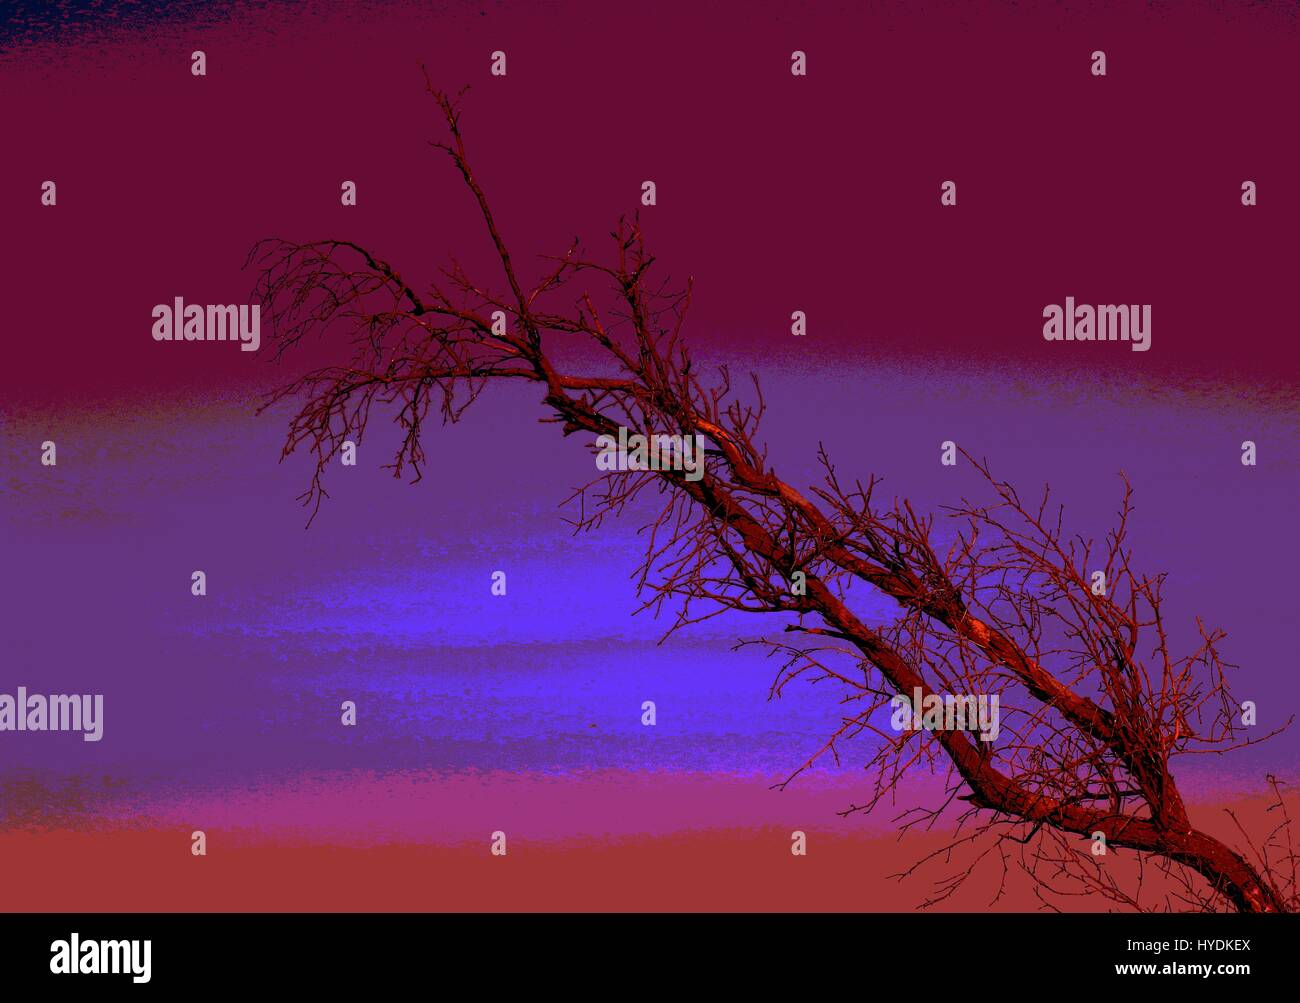 A dry branch against a futuristic and abstract skyline in landscape format - Stock Image